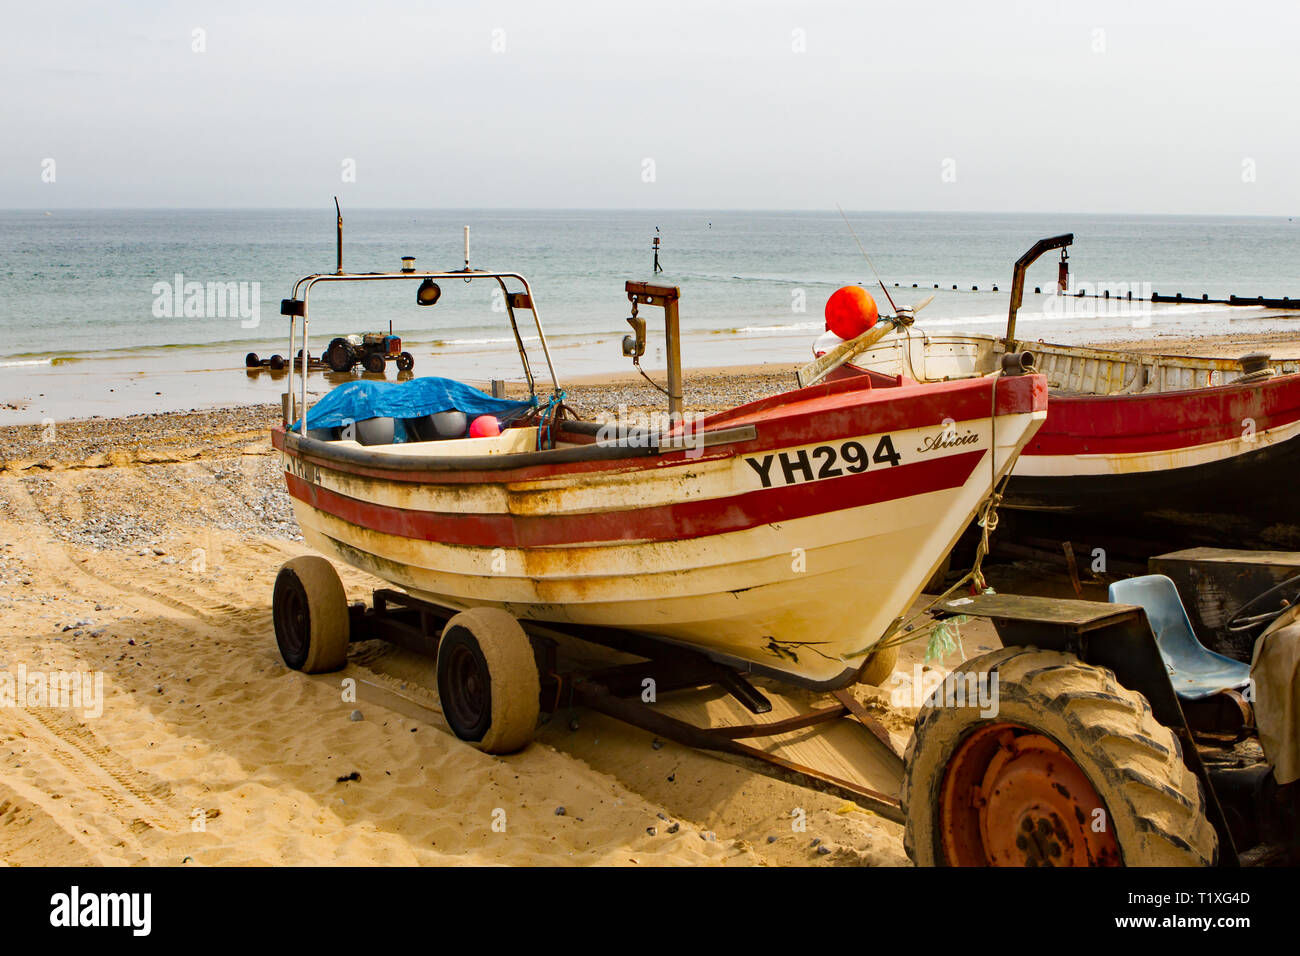 An old traditional wooden fishing boat on Cromer beach in need of some TLC - Stock Image